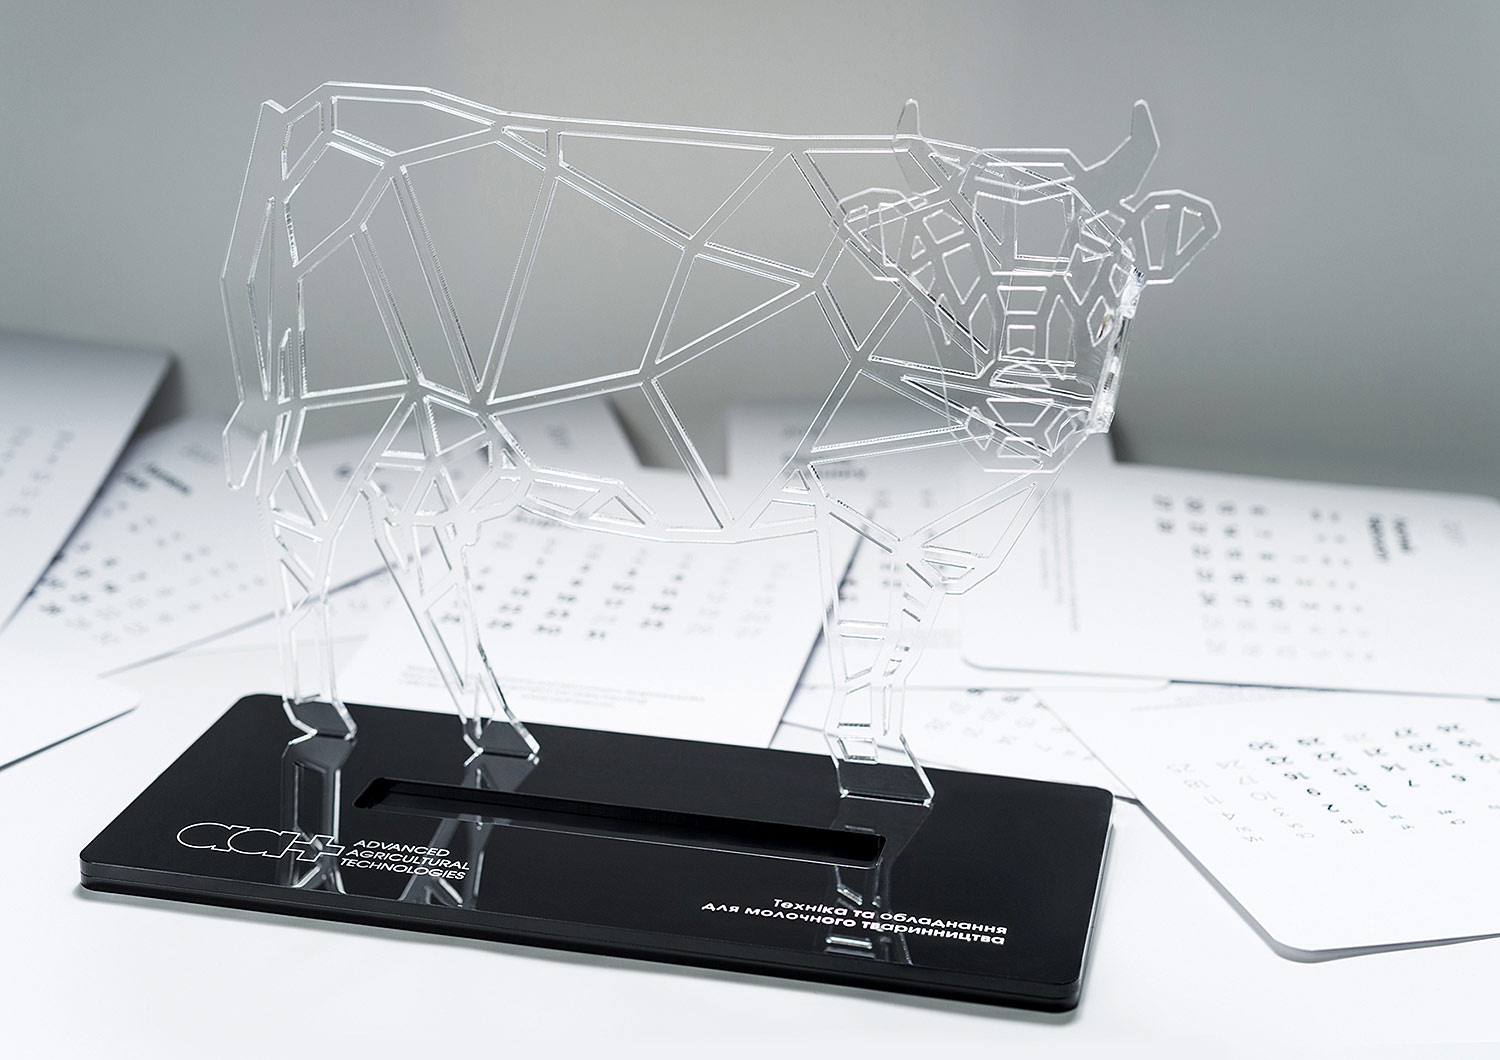 Acrylic cow — stand for desktop calendar. Black acrylic and clear acrylic, a stylish combination in a universal calendar with replaceable sheets. Universal business souvenir.